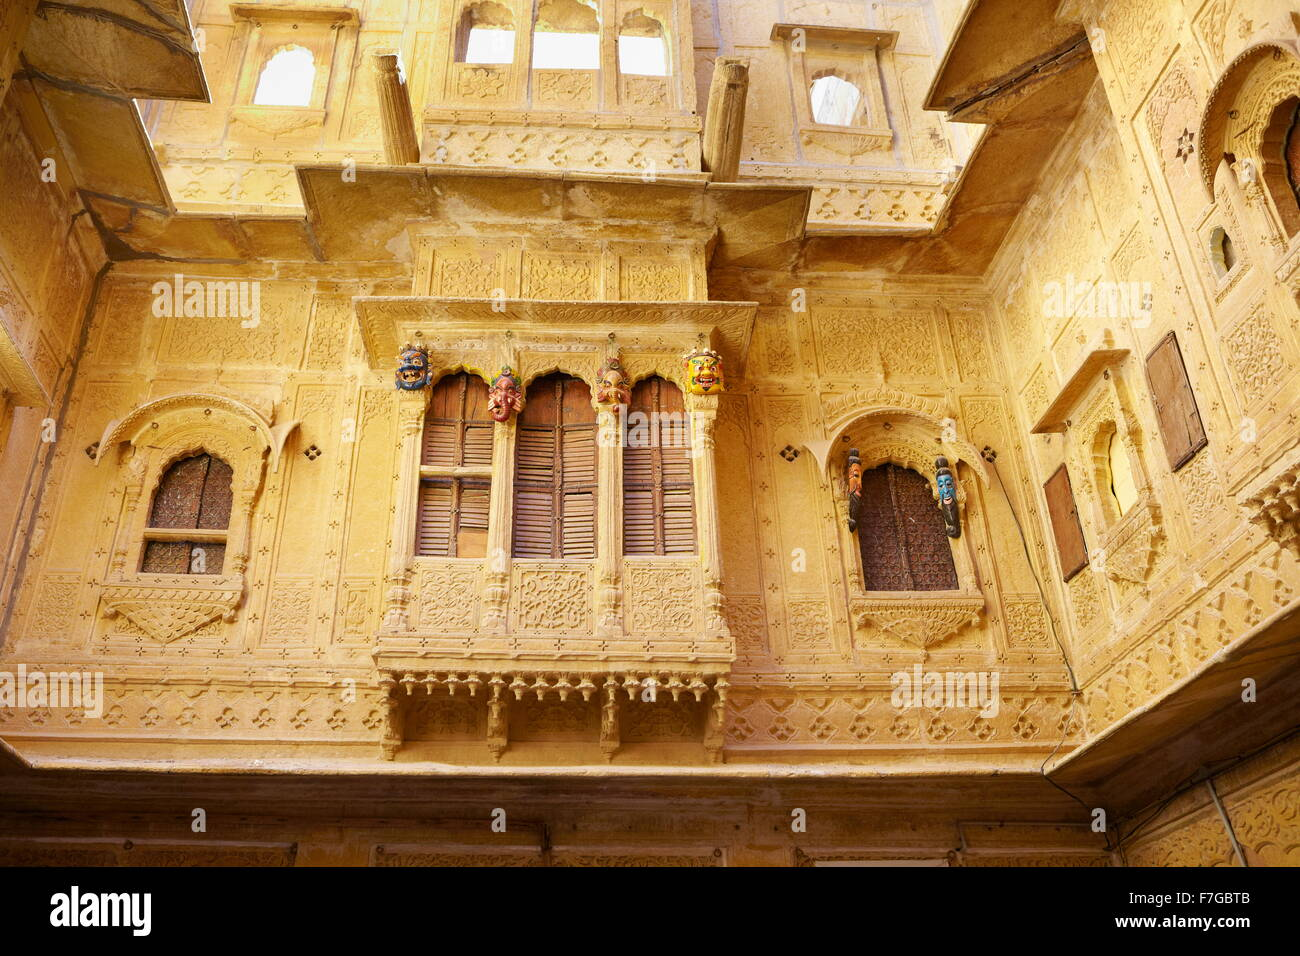 Decorated carvings in old haveli (mansion) in Jaisalmer, Rajasthan, India - Stock Image